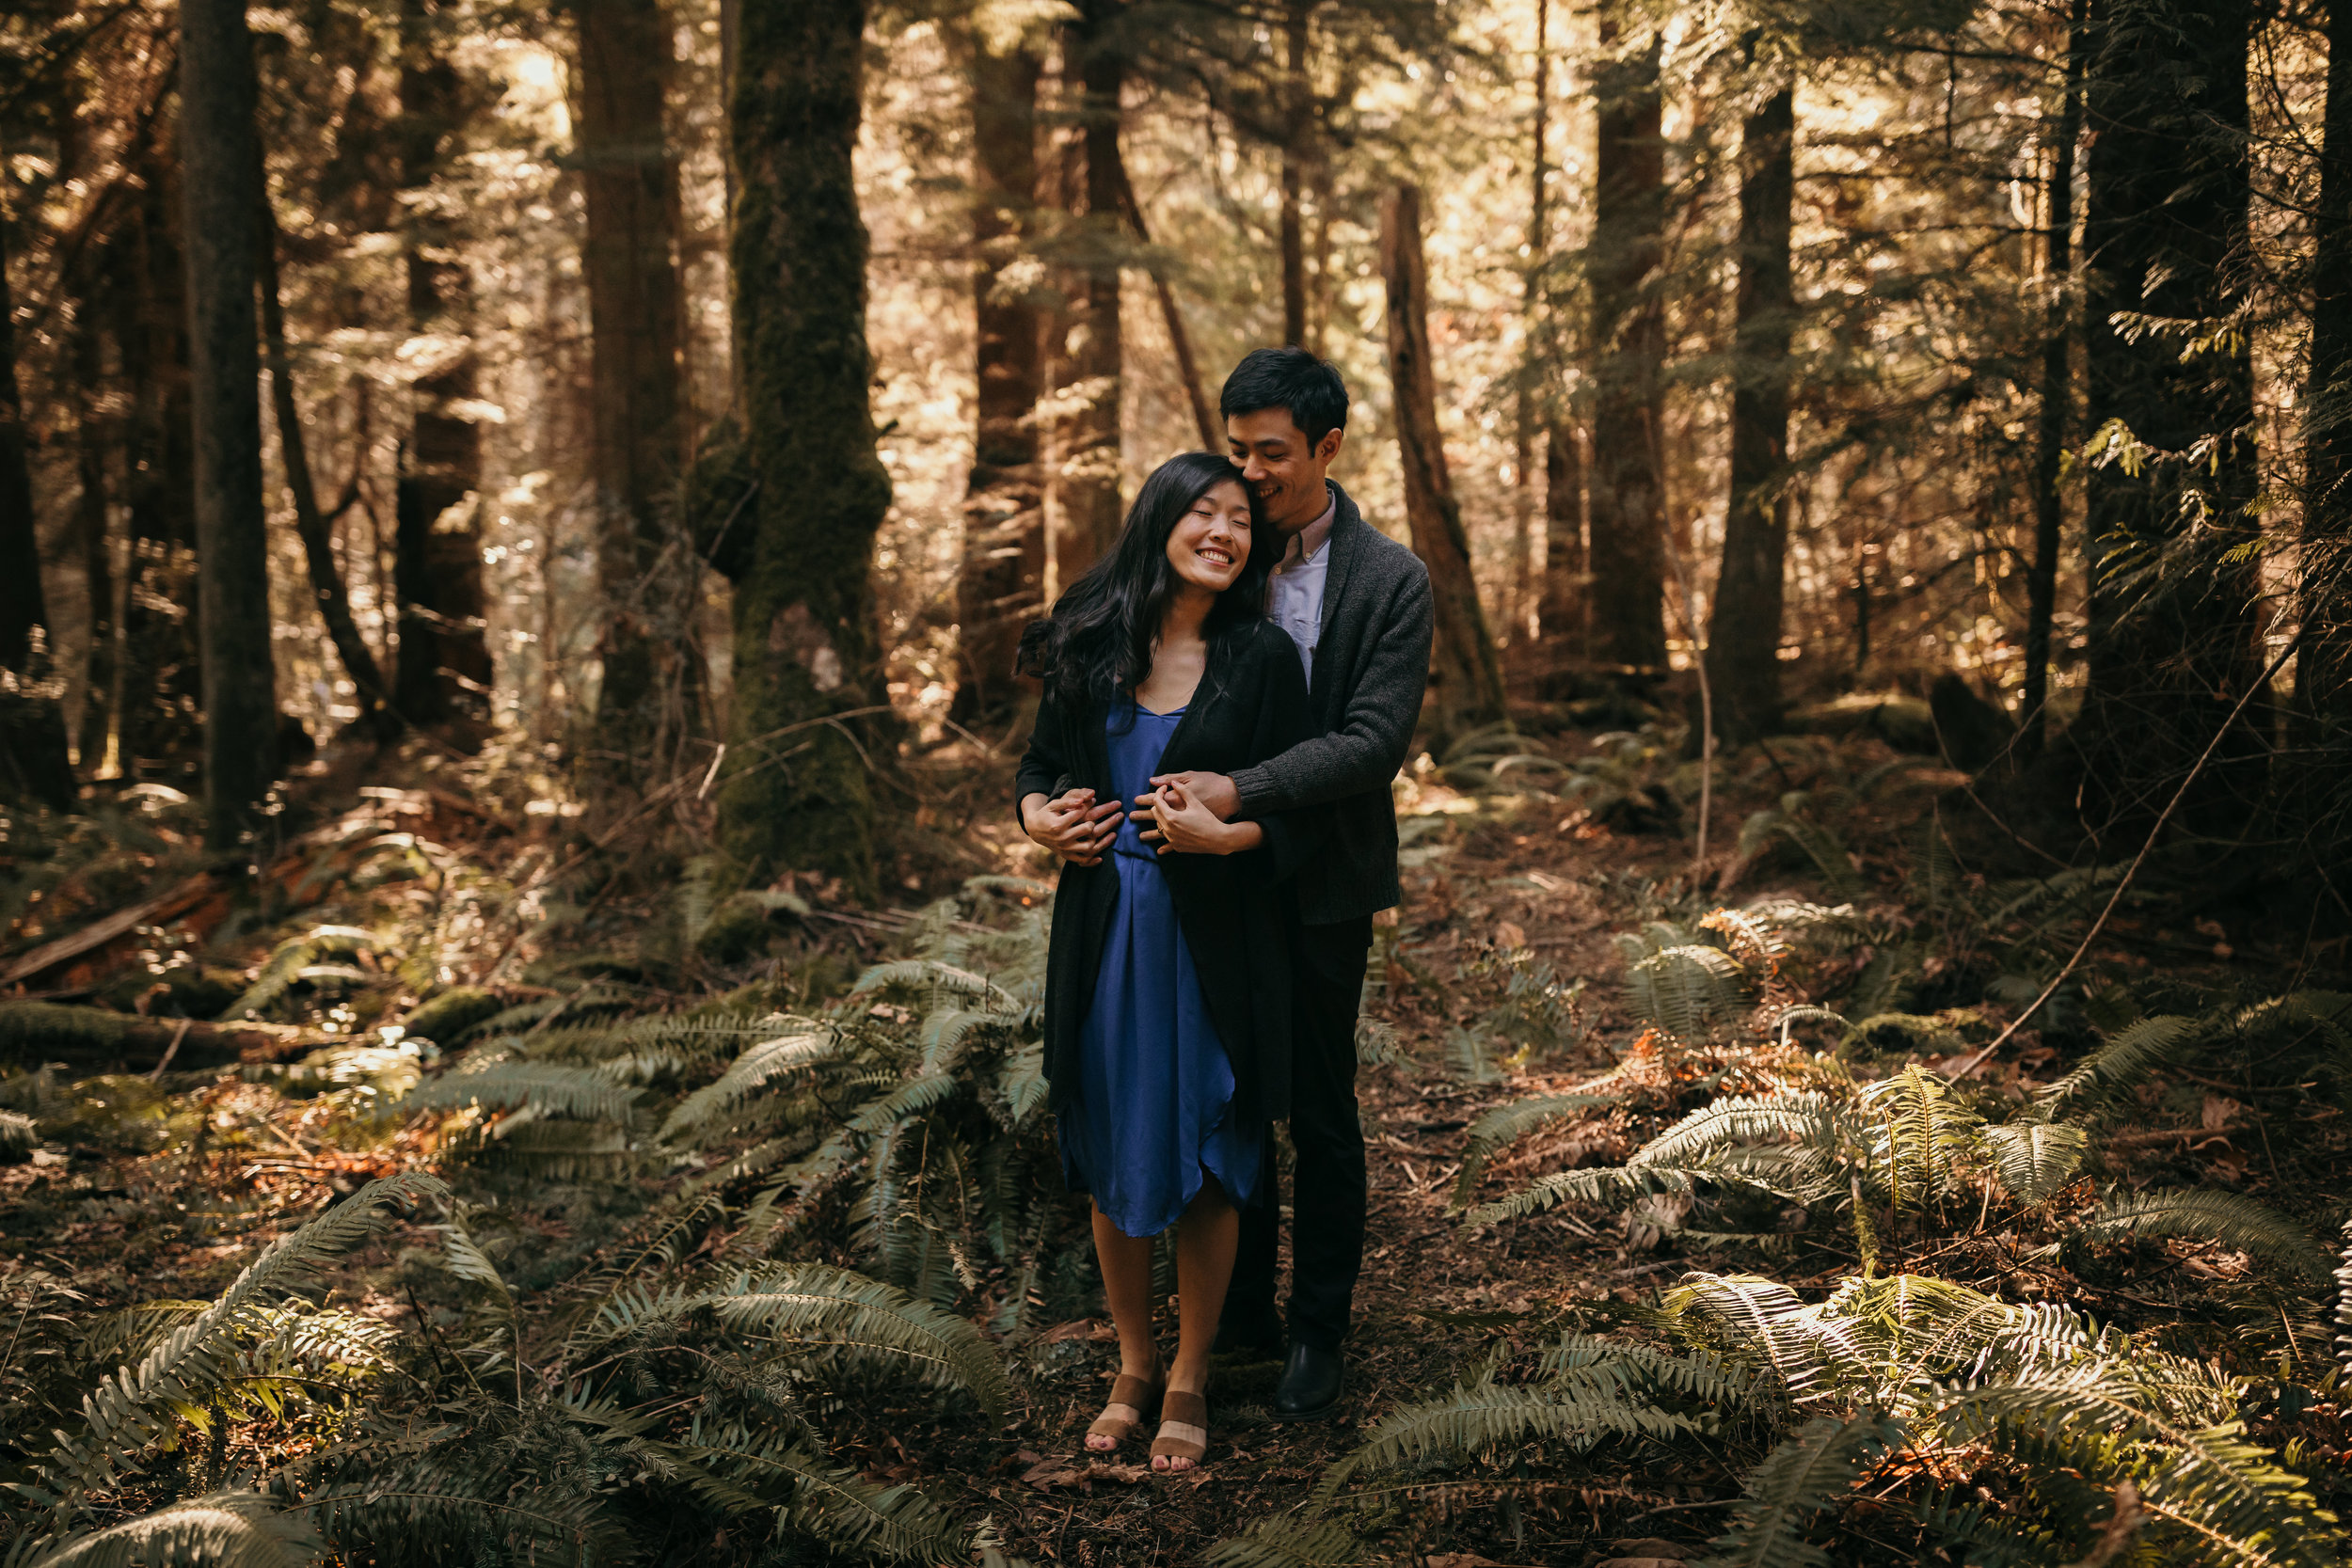 Sunshine Coast Forest Engagement Photos — Jennifer Picard Photography — Vancouver Wedding Photographer & Videographer — 374.JPG